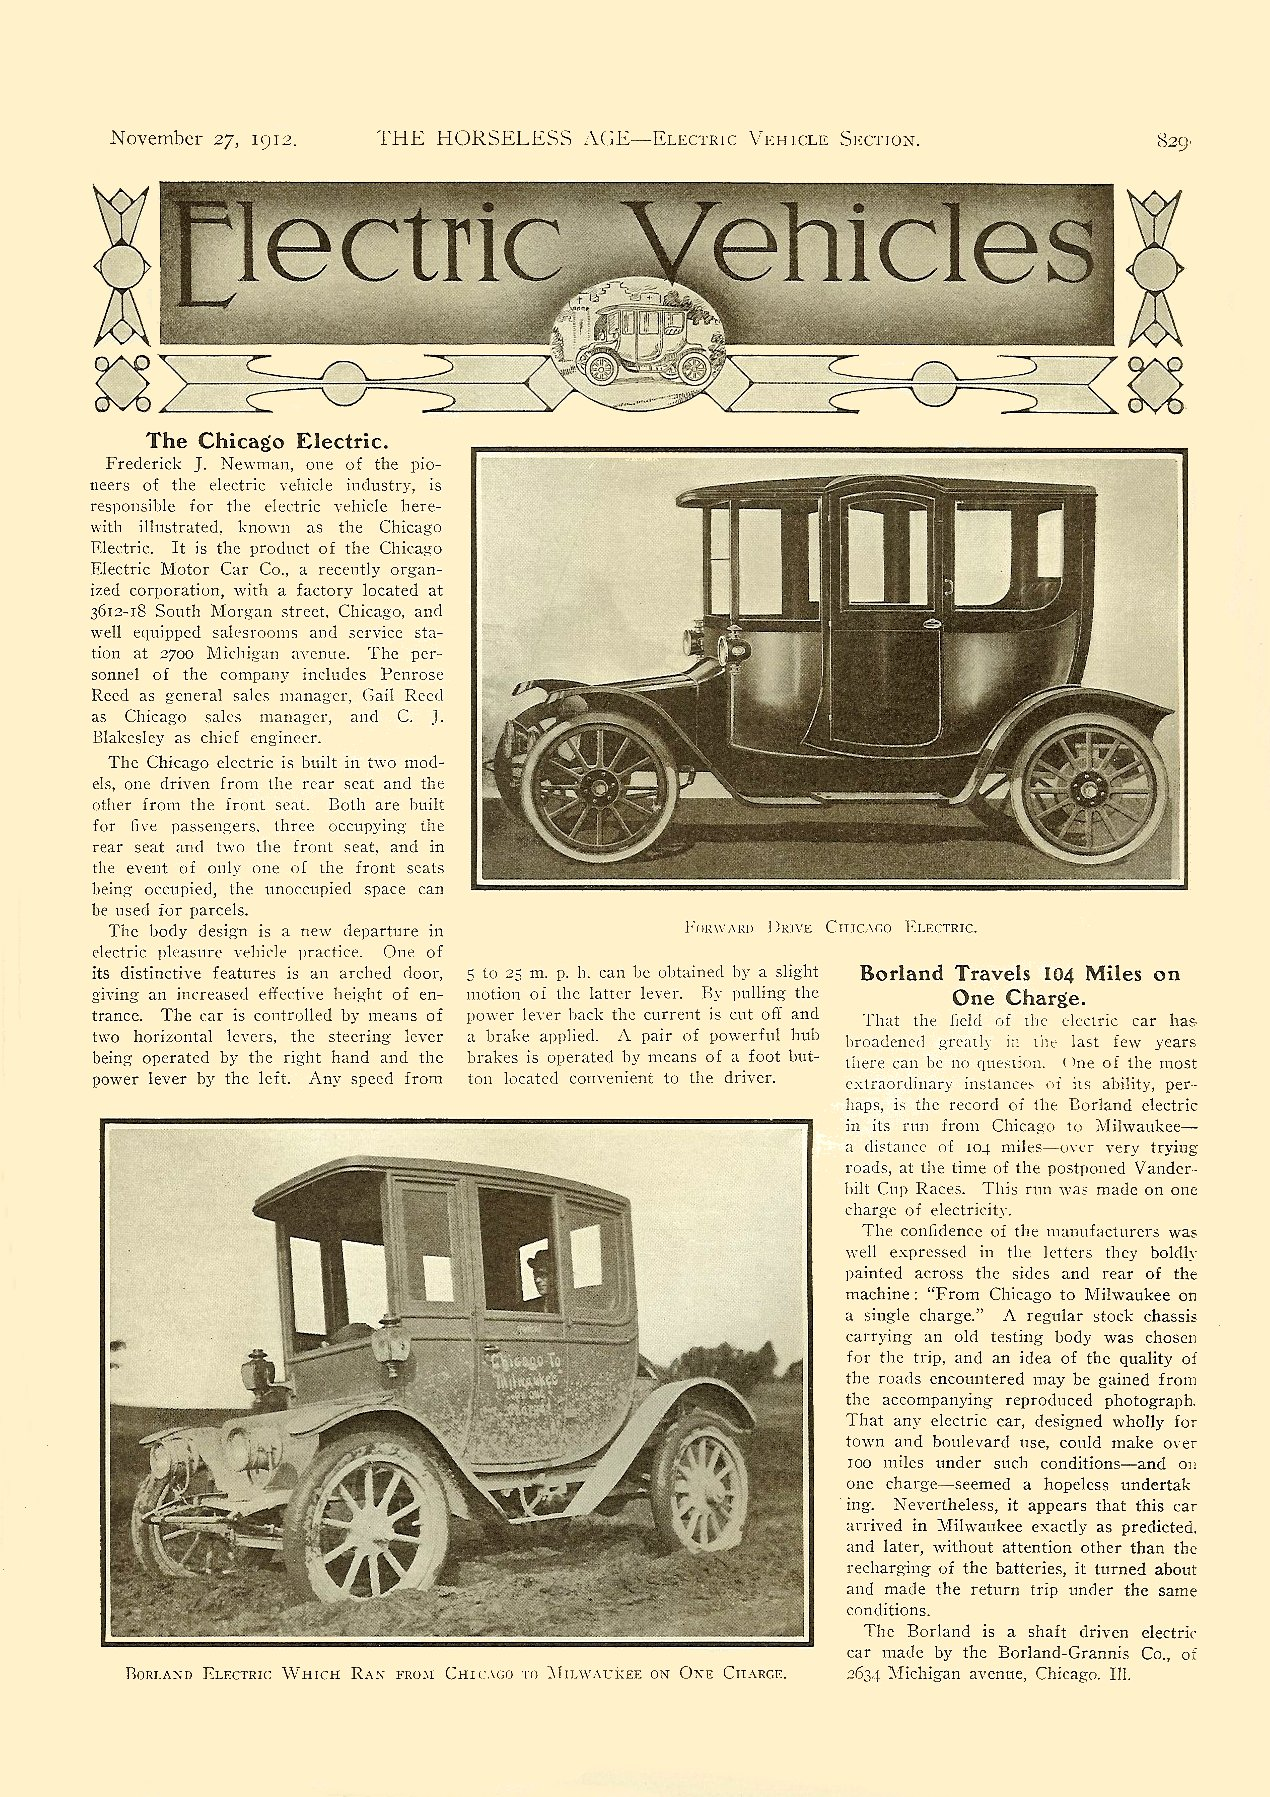 1912 11 27 1913 Electric Vehicles The Chicago Electric THE HORSELESS AGE Vol. 30, No. 22 November 27, 1912 9″x12″ page 829